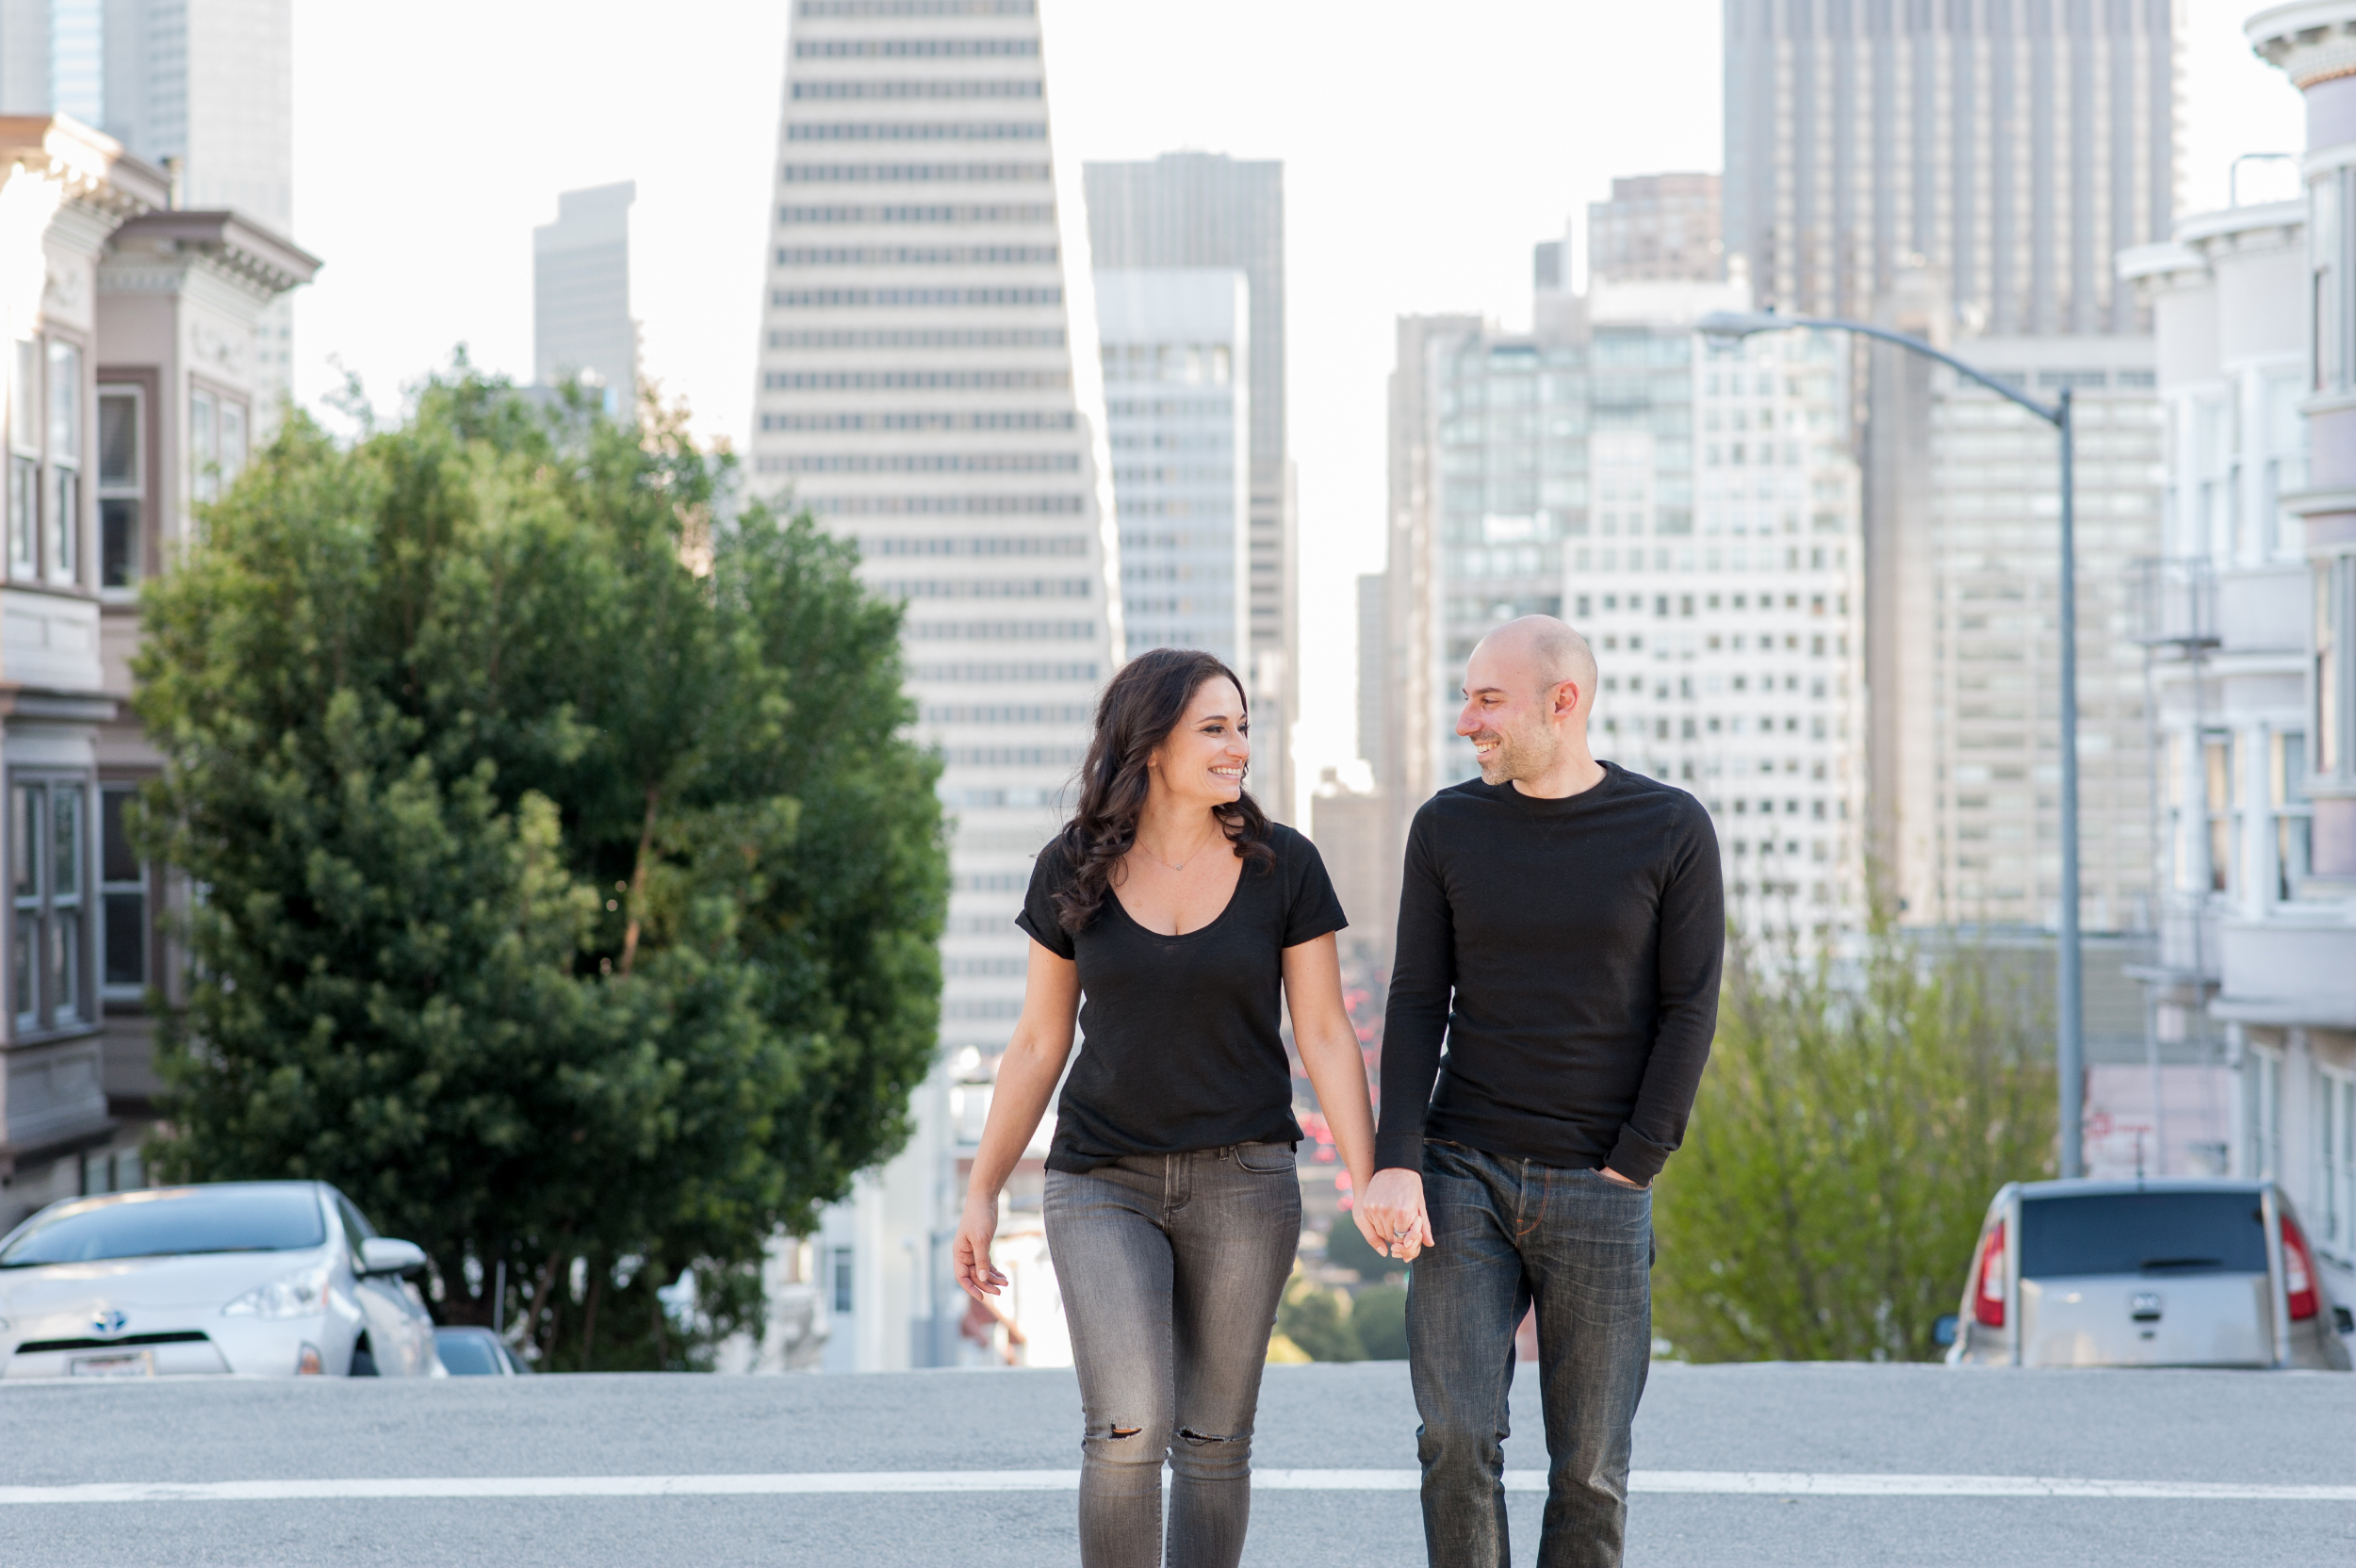 san-francisco-north-beach-engagement-session-AA0001.jpg